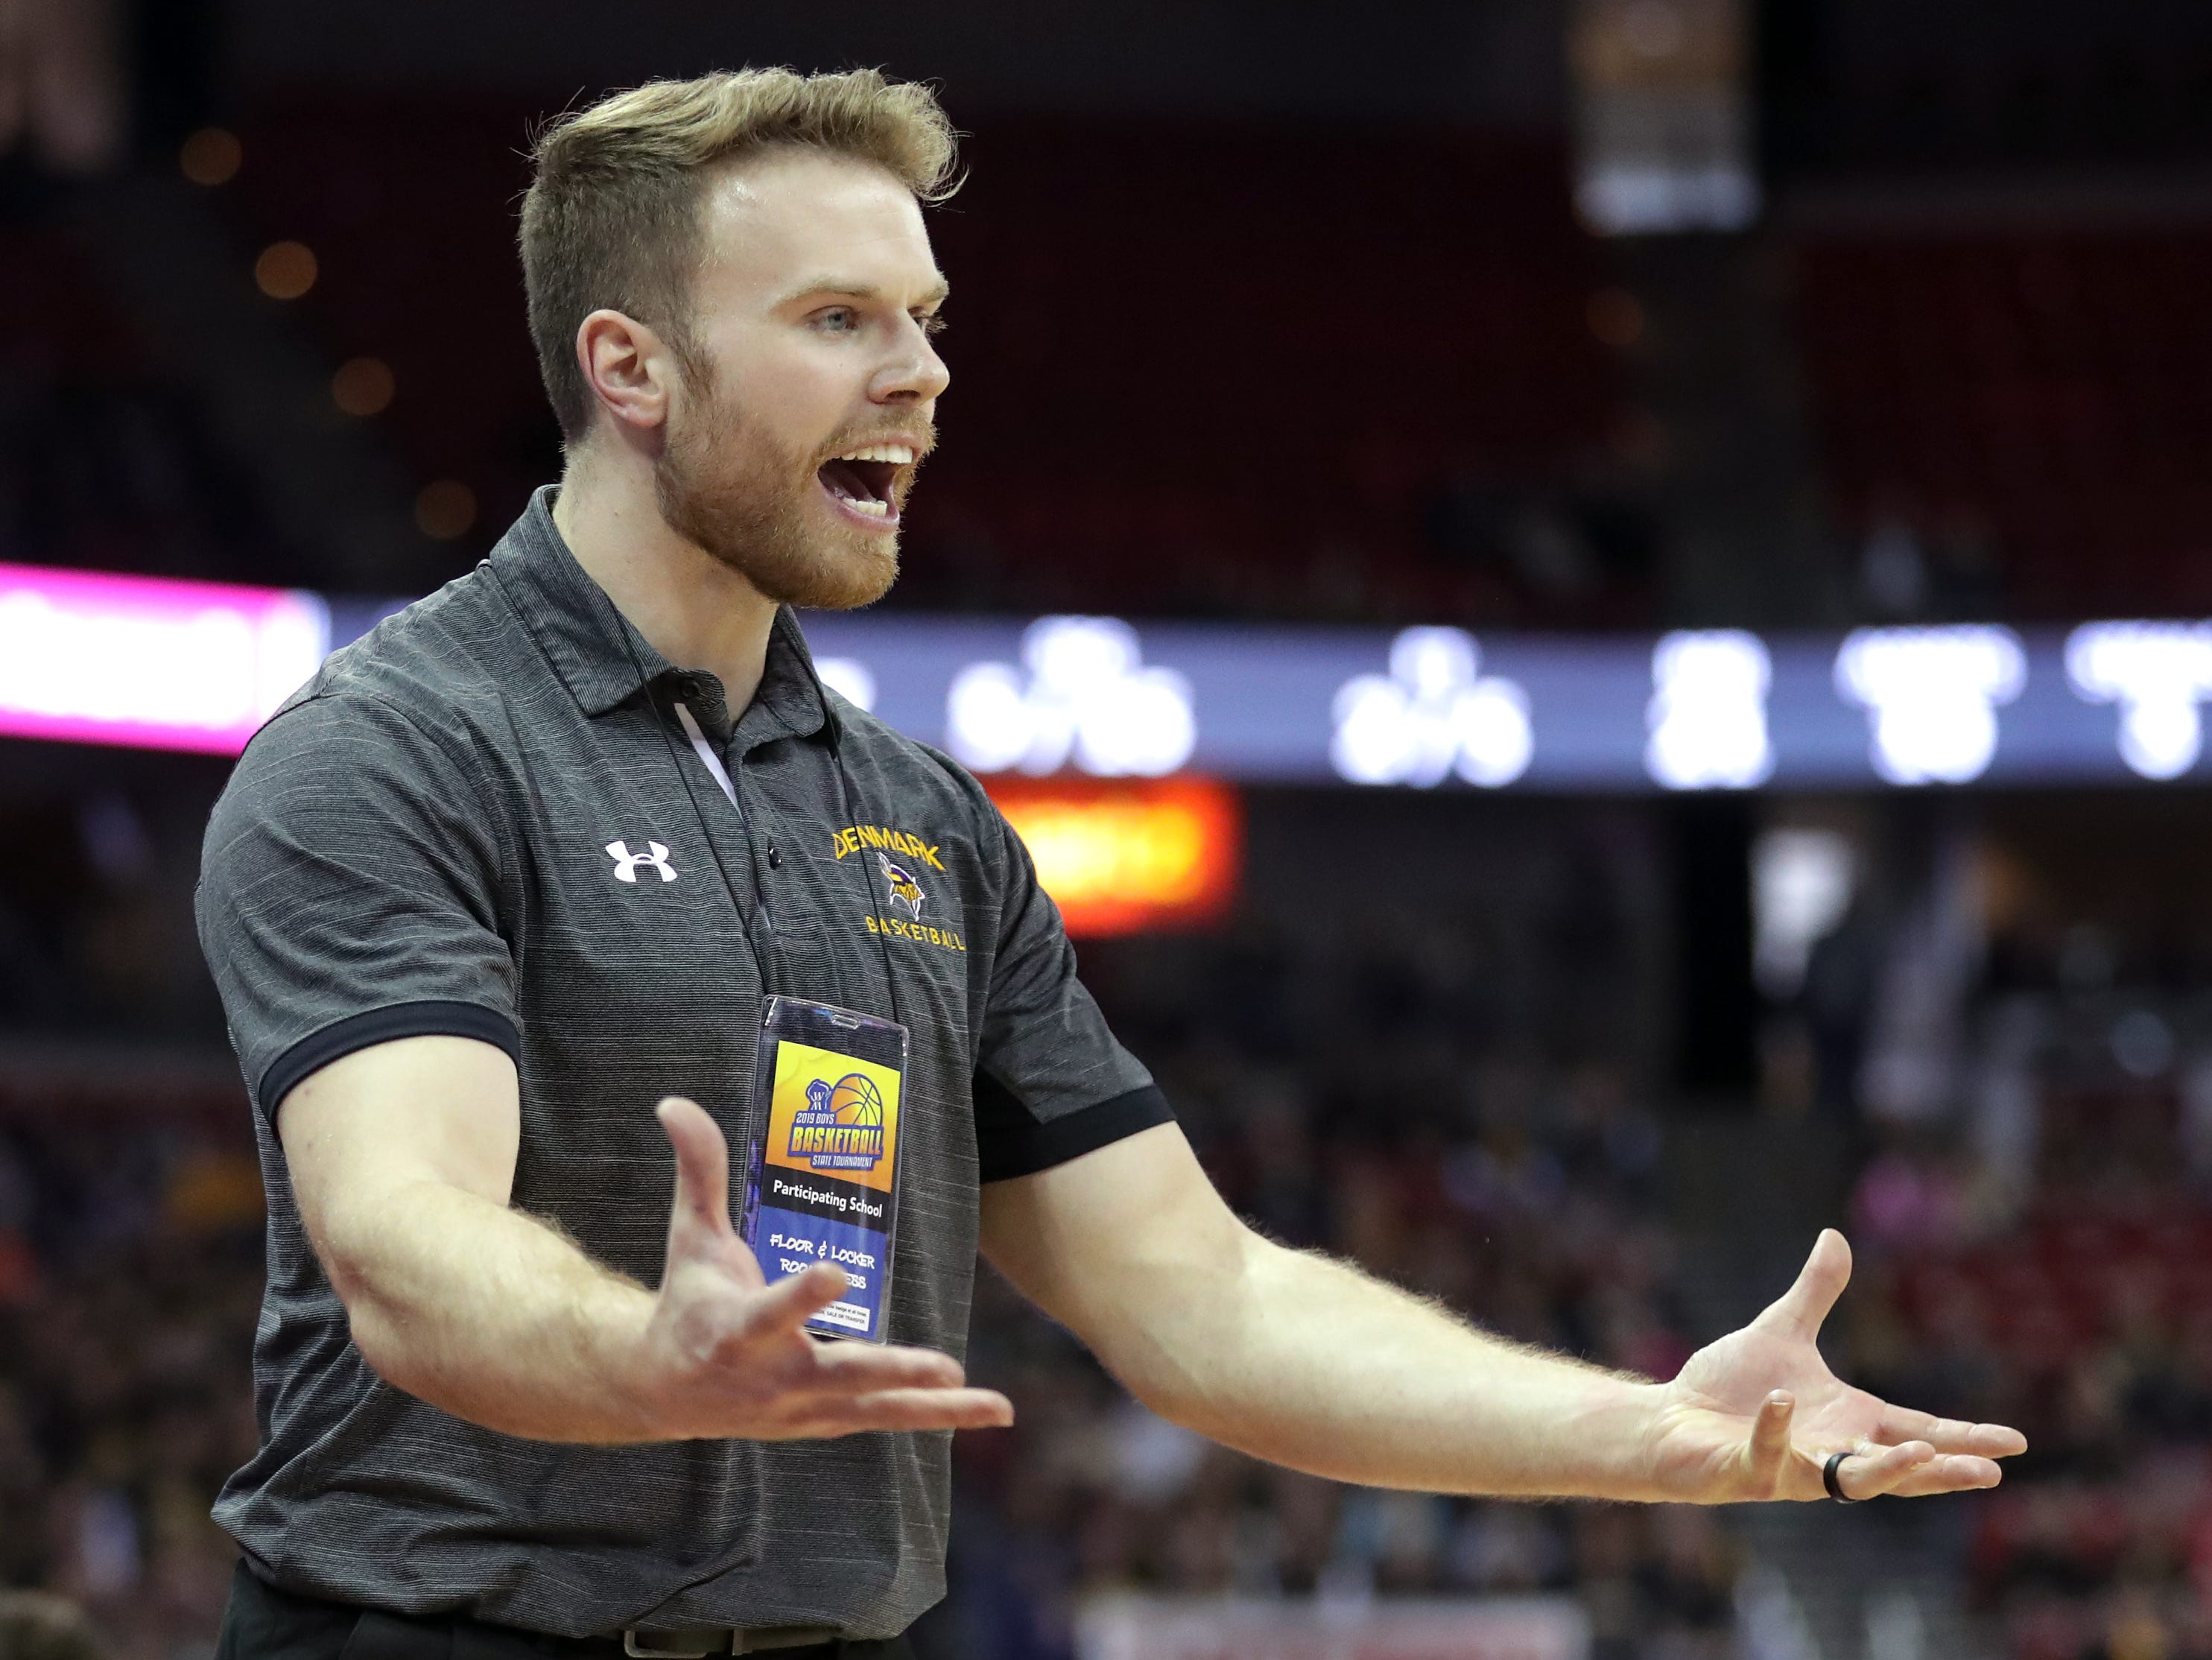 Denmark High School's head coach Cody Stelmach against Waupun High School during their WIAA Division 3 boys basketball state semifinal on Thursday, March 14, 2019, at the KohlCenter in Madison, Wis.  Waupun defeated Denmark 60 to 43.